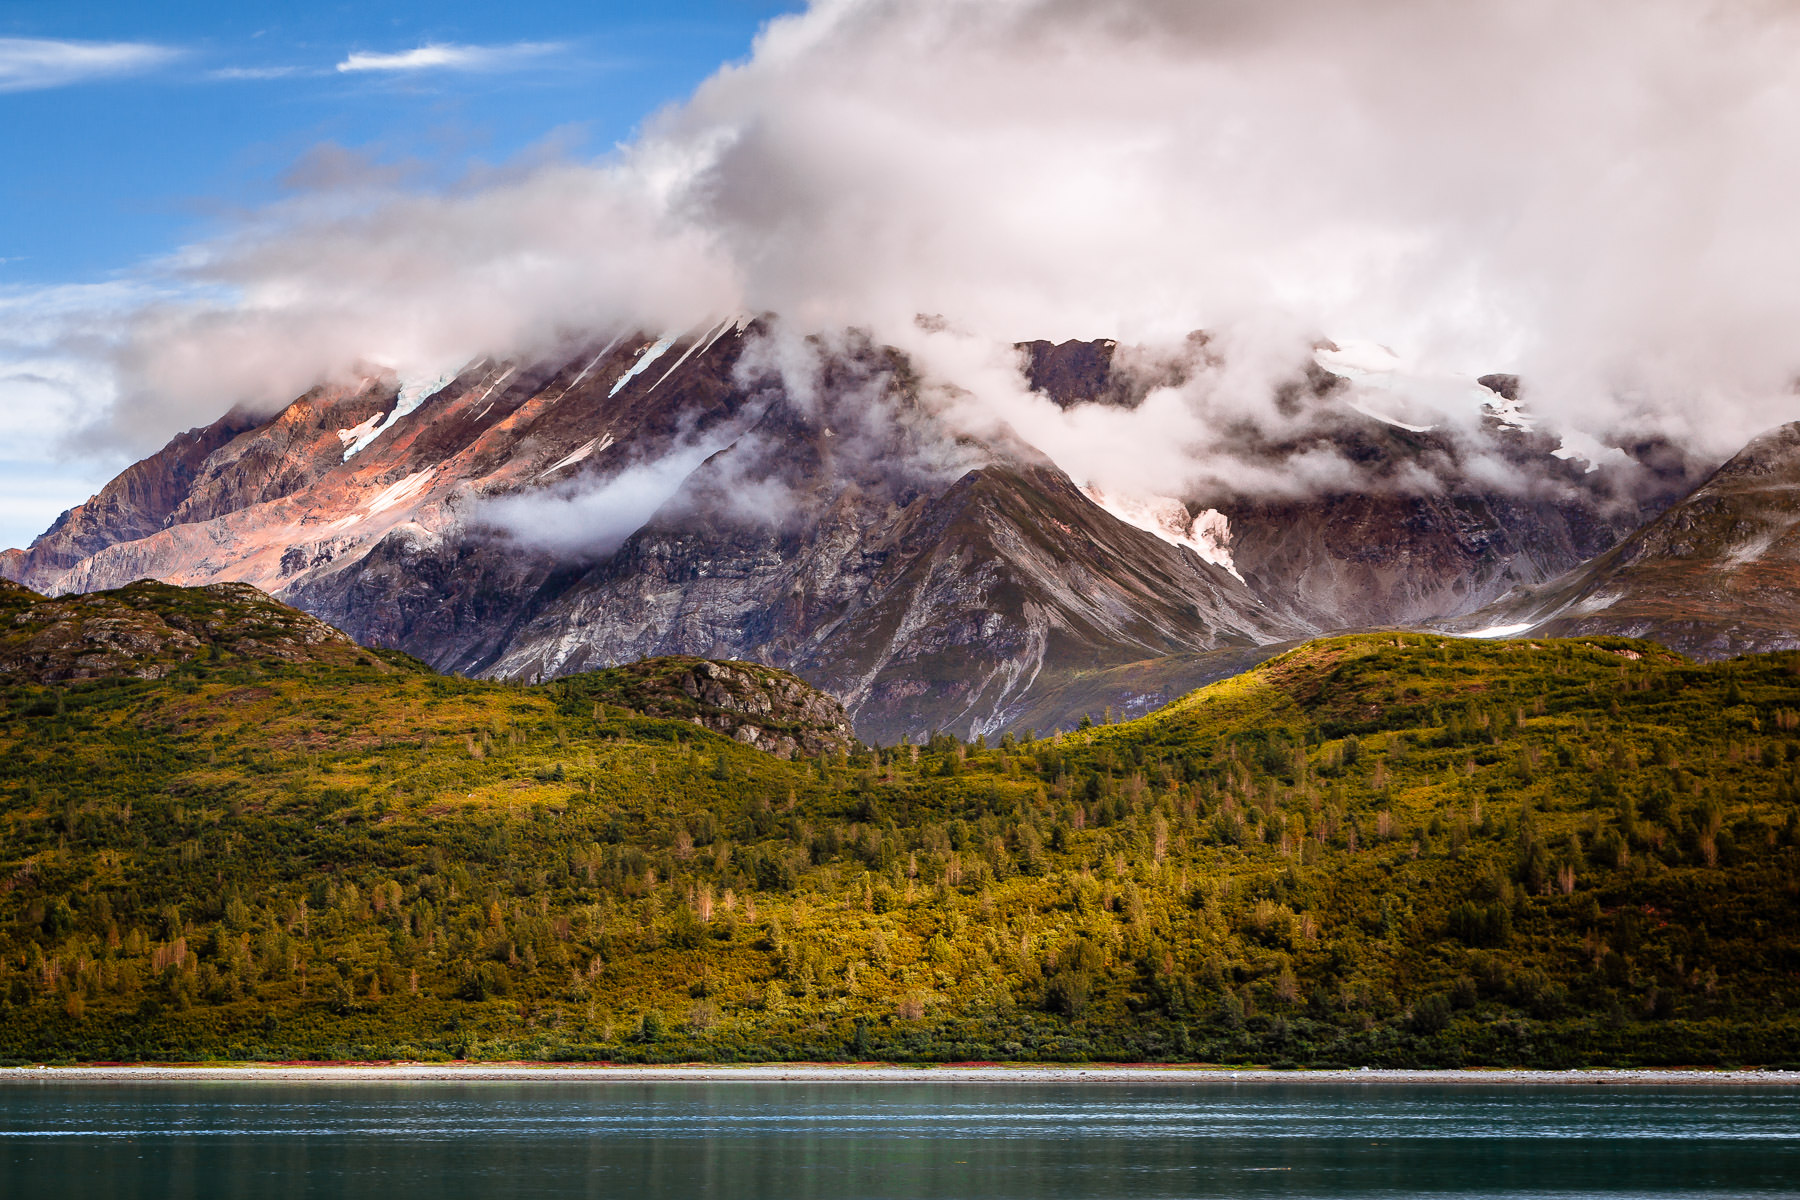 A mountain rises into the clouds at Glacier Bay National Park, Alaska.